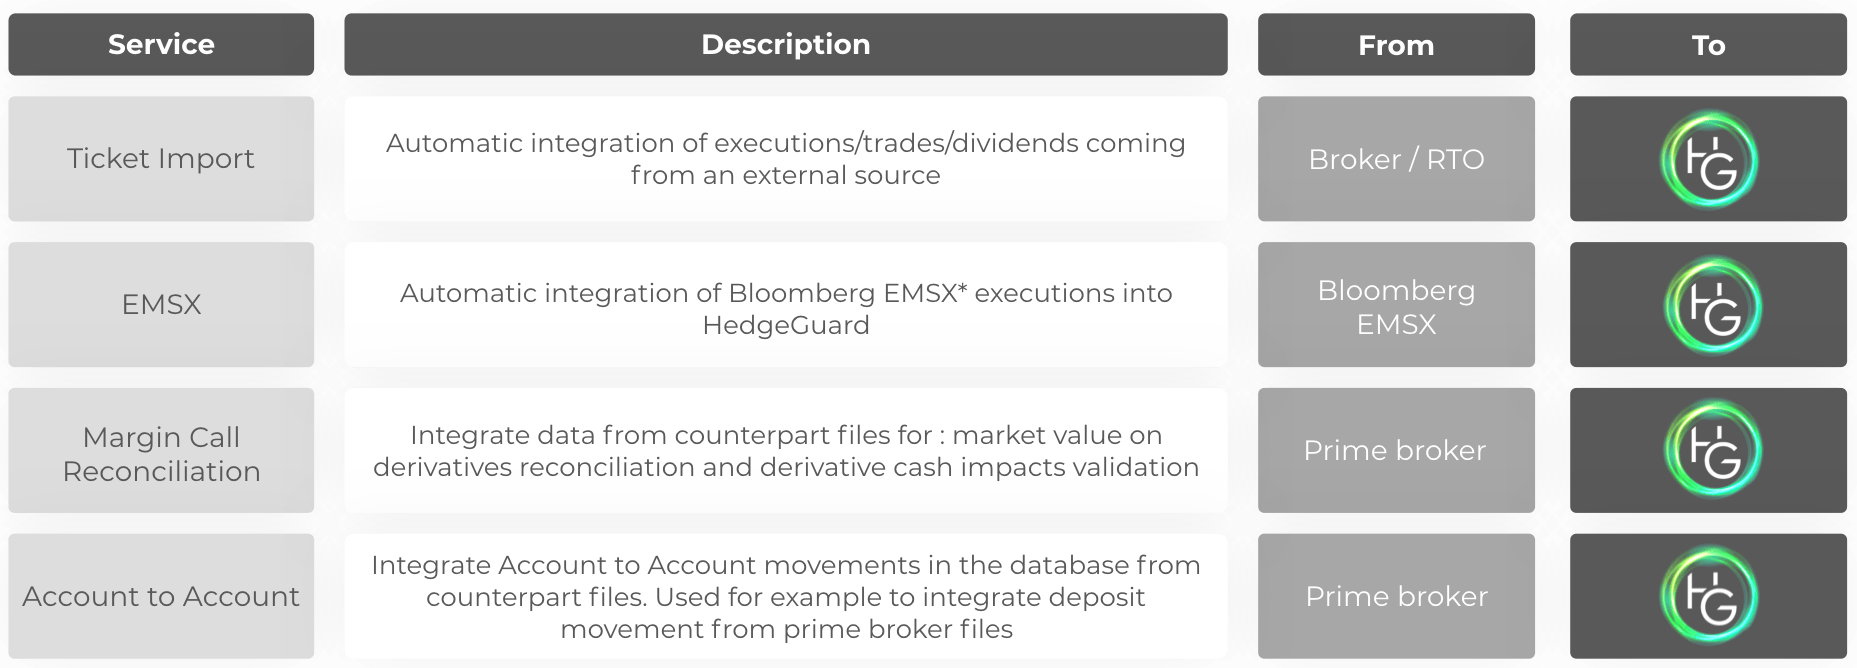 Automated services for execution desks | Hedgeguard